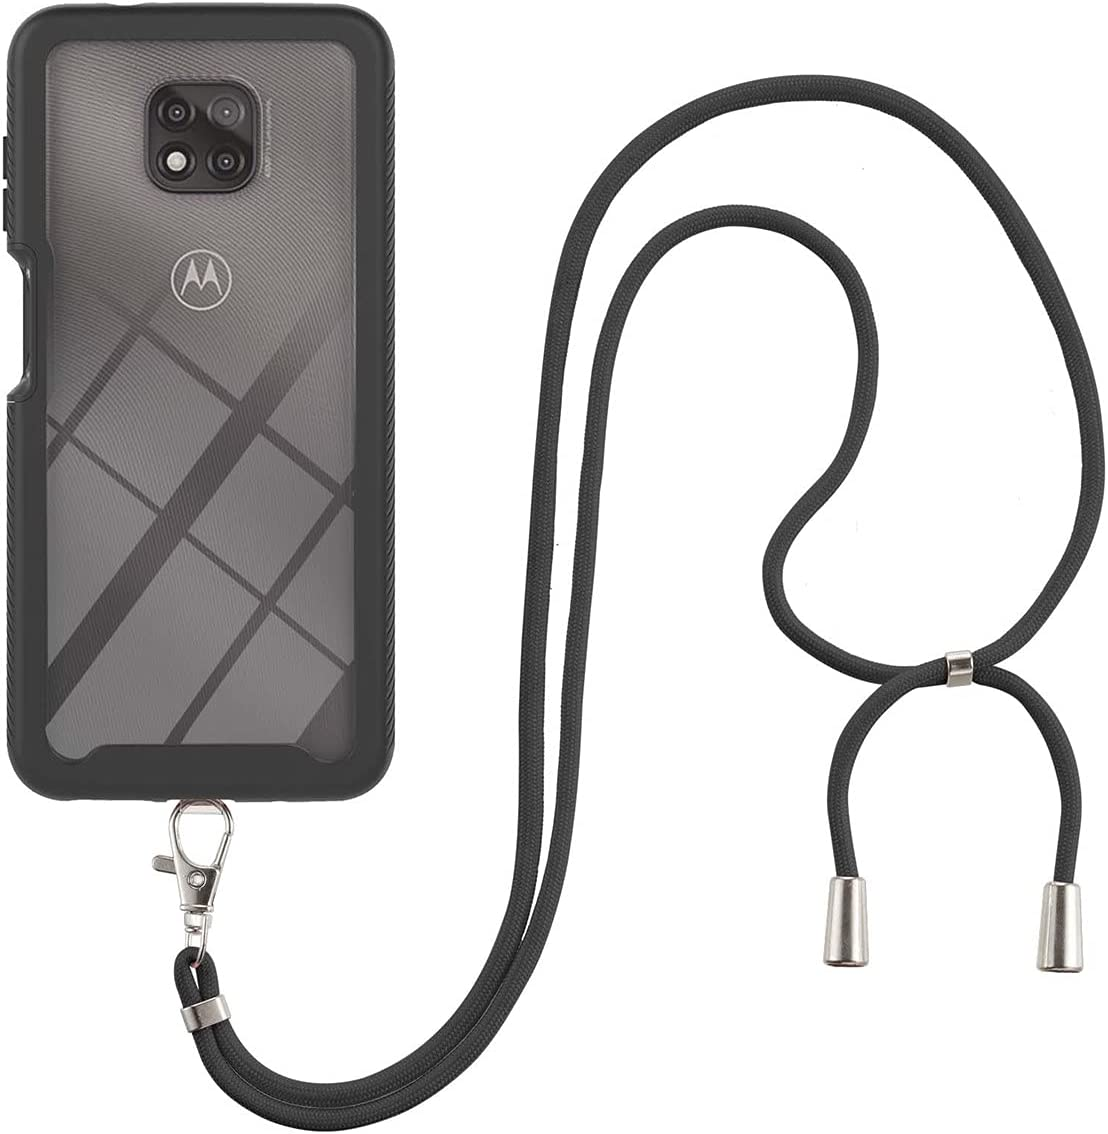 Moto G Power (2021) Case, Gift_Source Slim Shockproof Crossbody Case 2 in 1 Soft Silicone Bumper & Clear Hard PC Back Cover Shell with Lanyard Neck Strap for Motorola Moto G Power (2021) 6.6